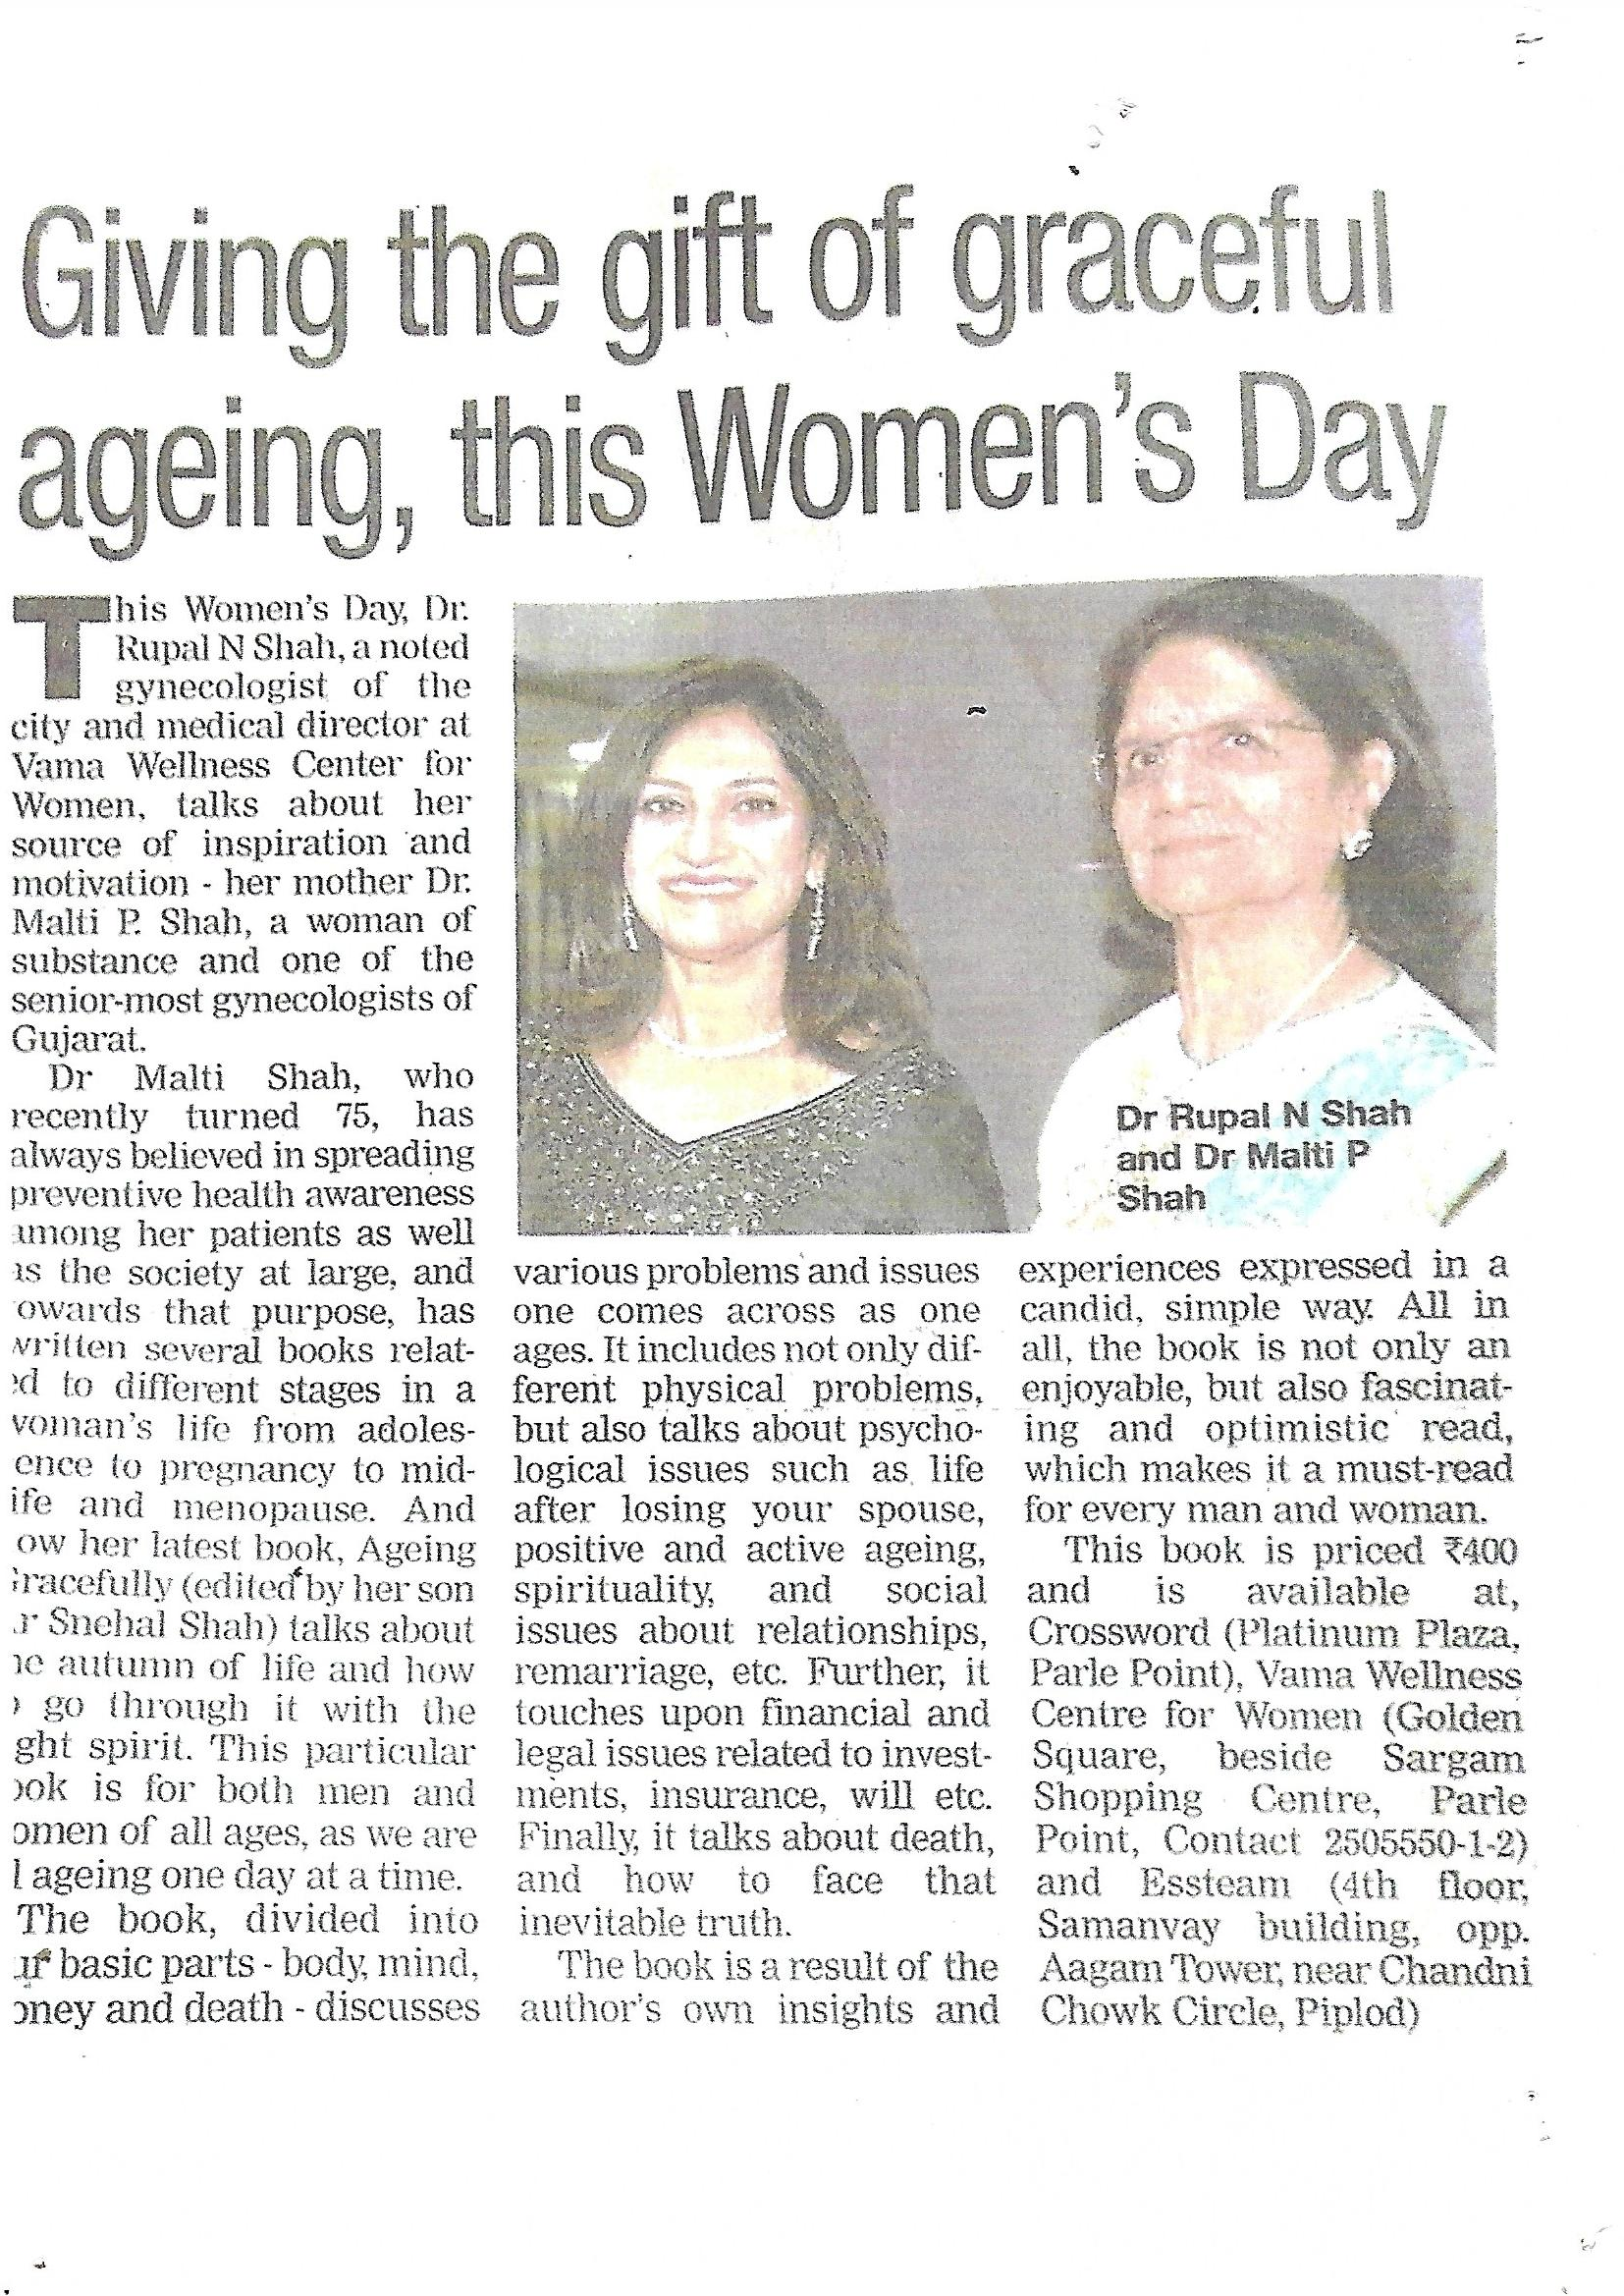 Giving the Gift of Graceful Ageing , This Women's Day.